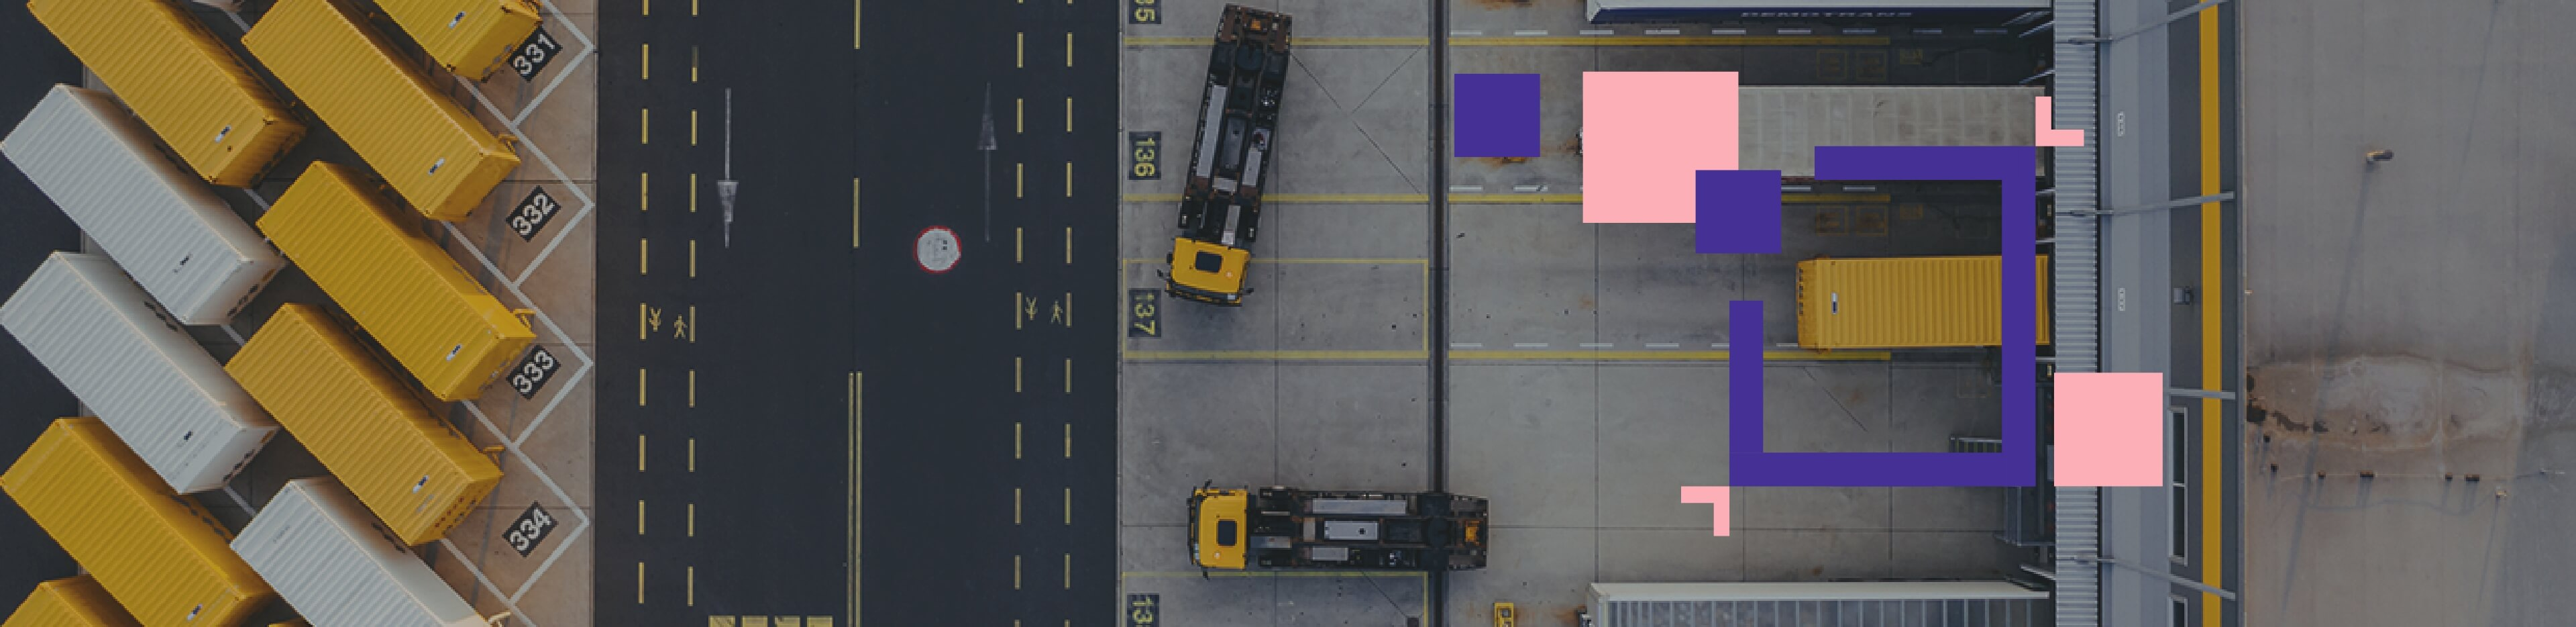 Warehouse parking lot top view